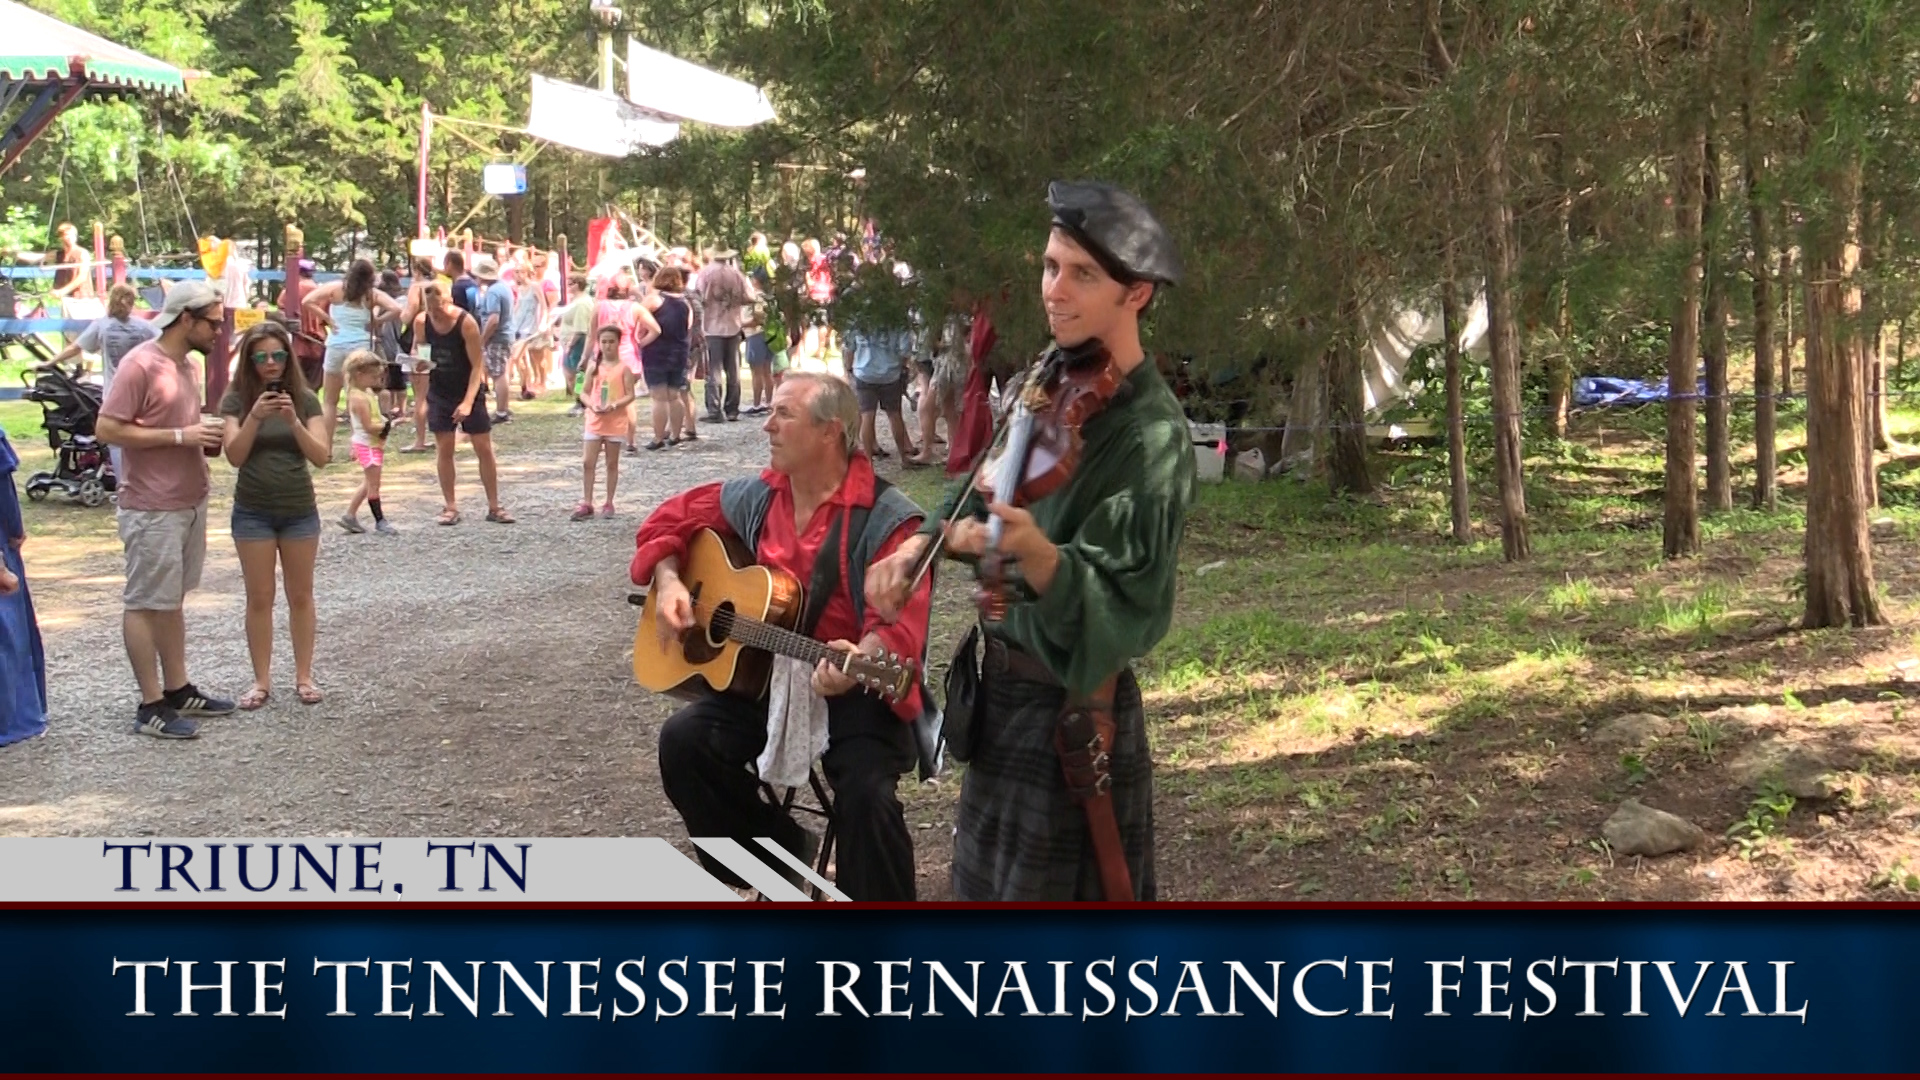 VIDEO - Scenes from TN Renaissance Festival